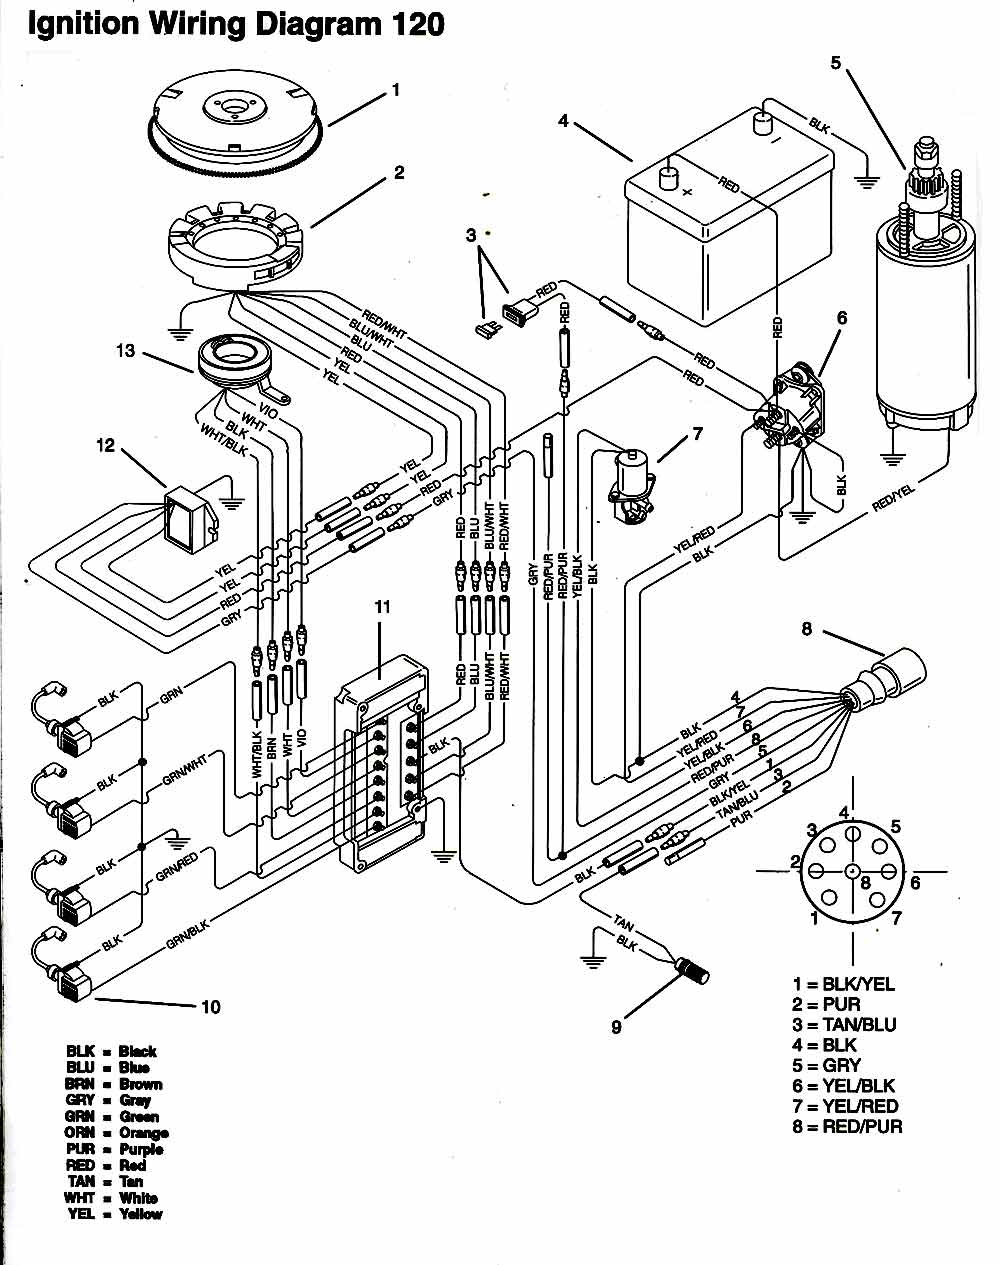 Wiring Diagram 93 Ford Aerostar Html likewise 1993 Jeep Cherokee Fuse Box Diagram together with Alternator Wiring Diagrams And Information further Diagrama De Fusibles Ford Explorer 2000 moreover T26300215 Color wire  ing off transmission 2016. on 1993 ford aerostar fuse box diagram